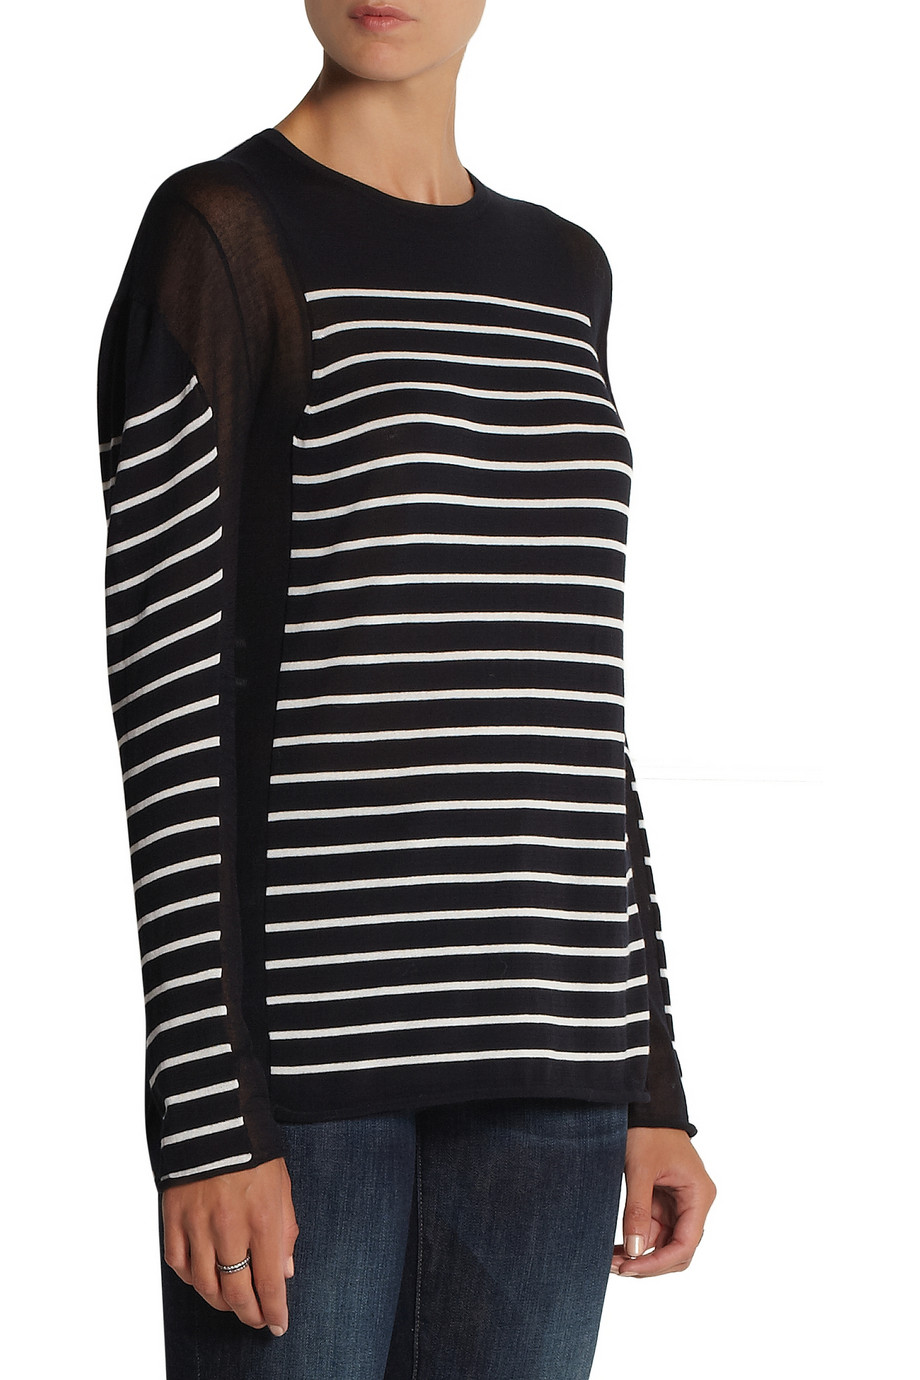 T by Alexander Wang Striped cotton-blend top – 58% at THE OUTNET.COM